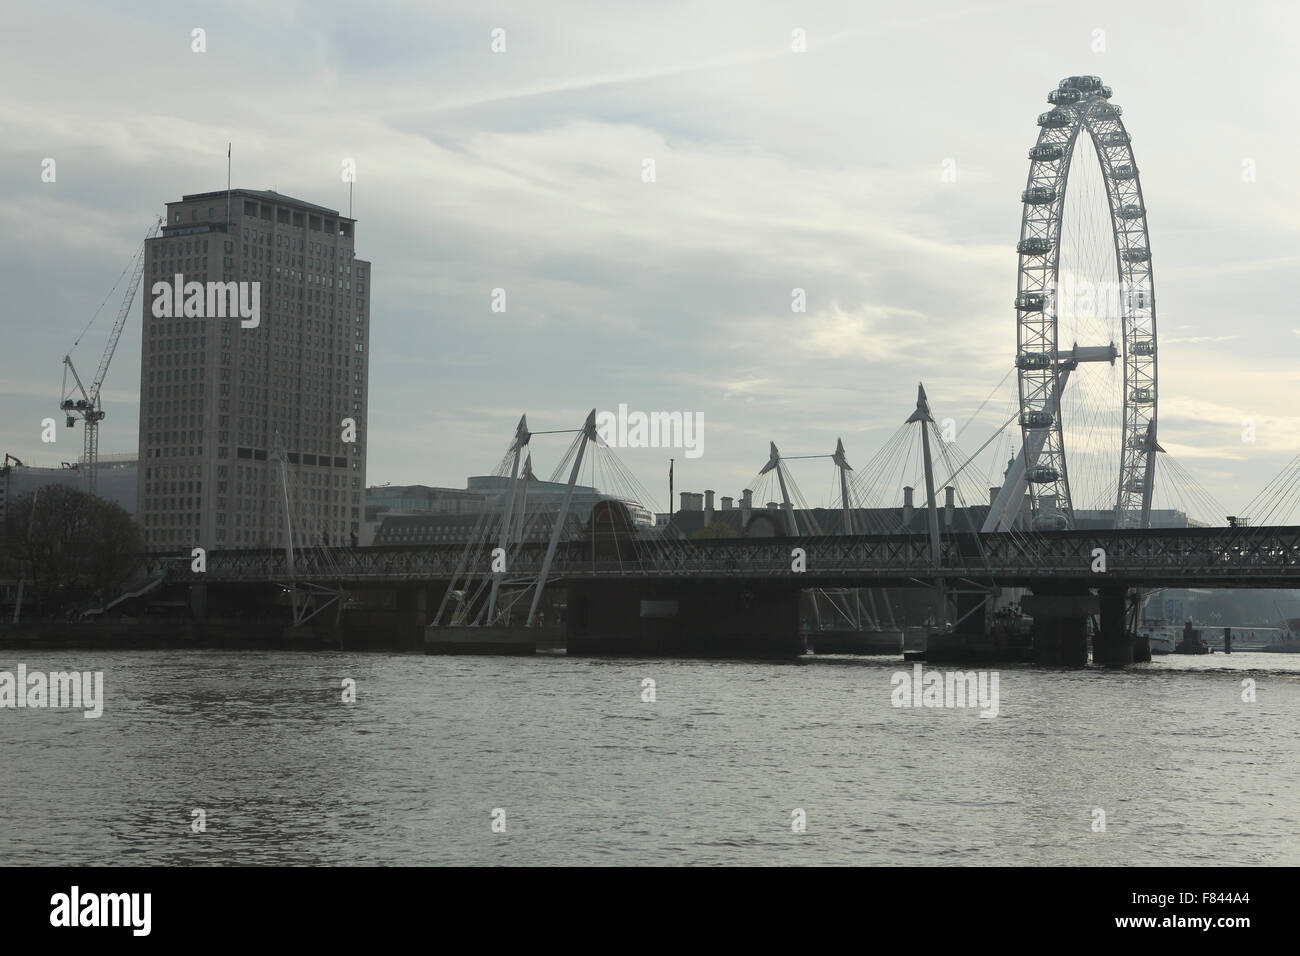 The Golden Jubilee Bridges cross the River Thames in London, UK. The London Eye rotates to the right of the image. - Stock Image